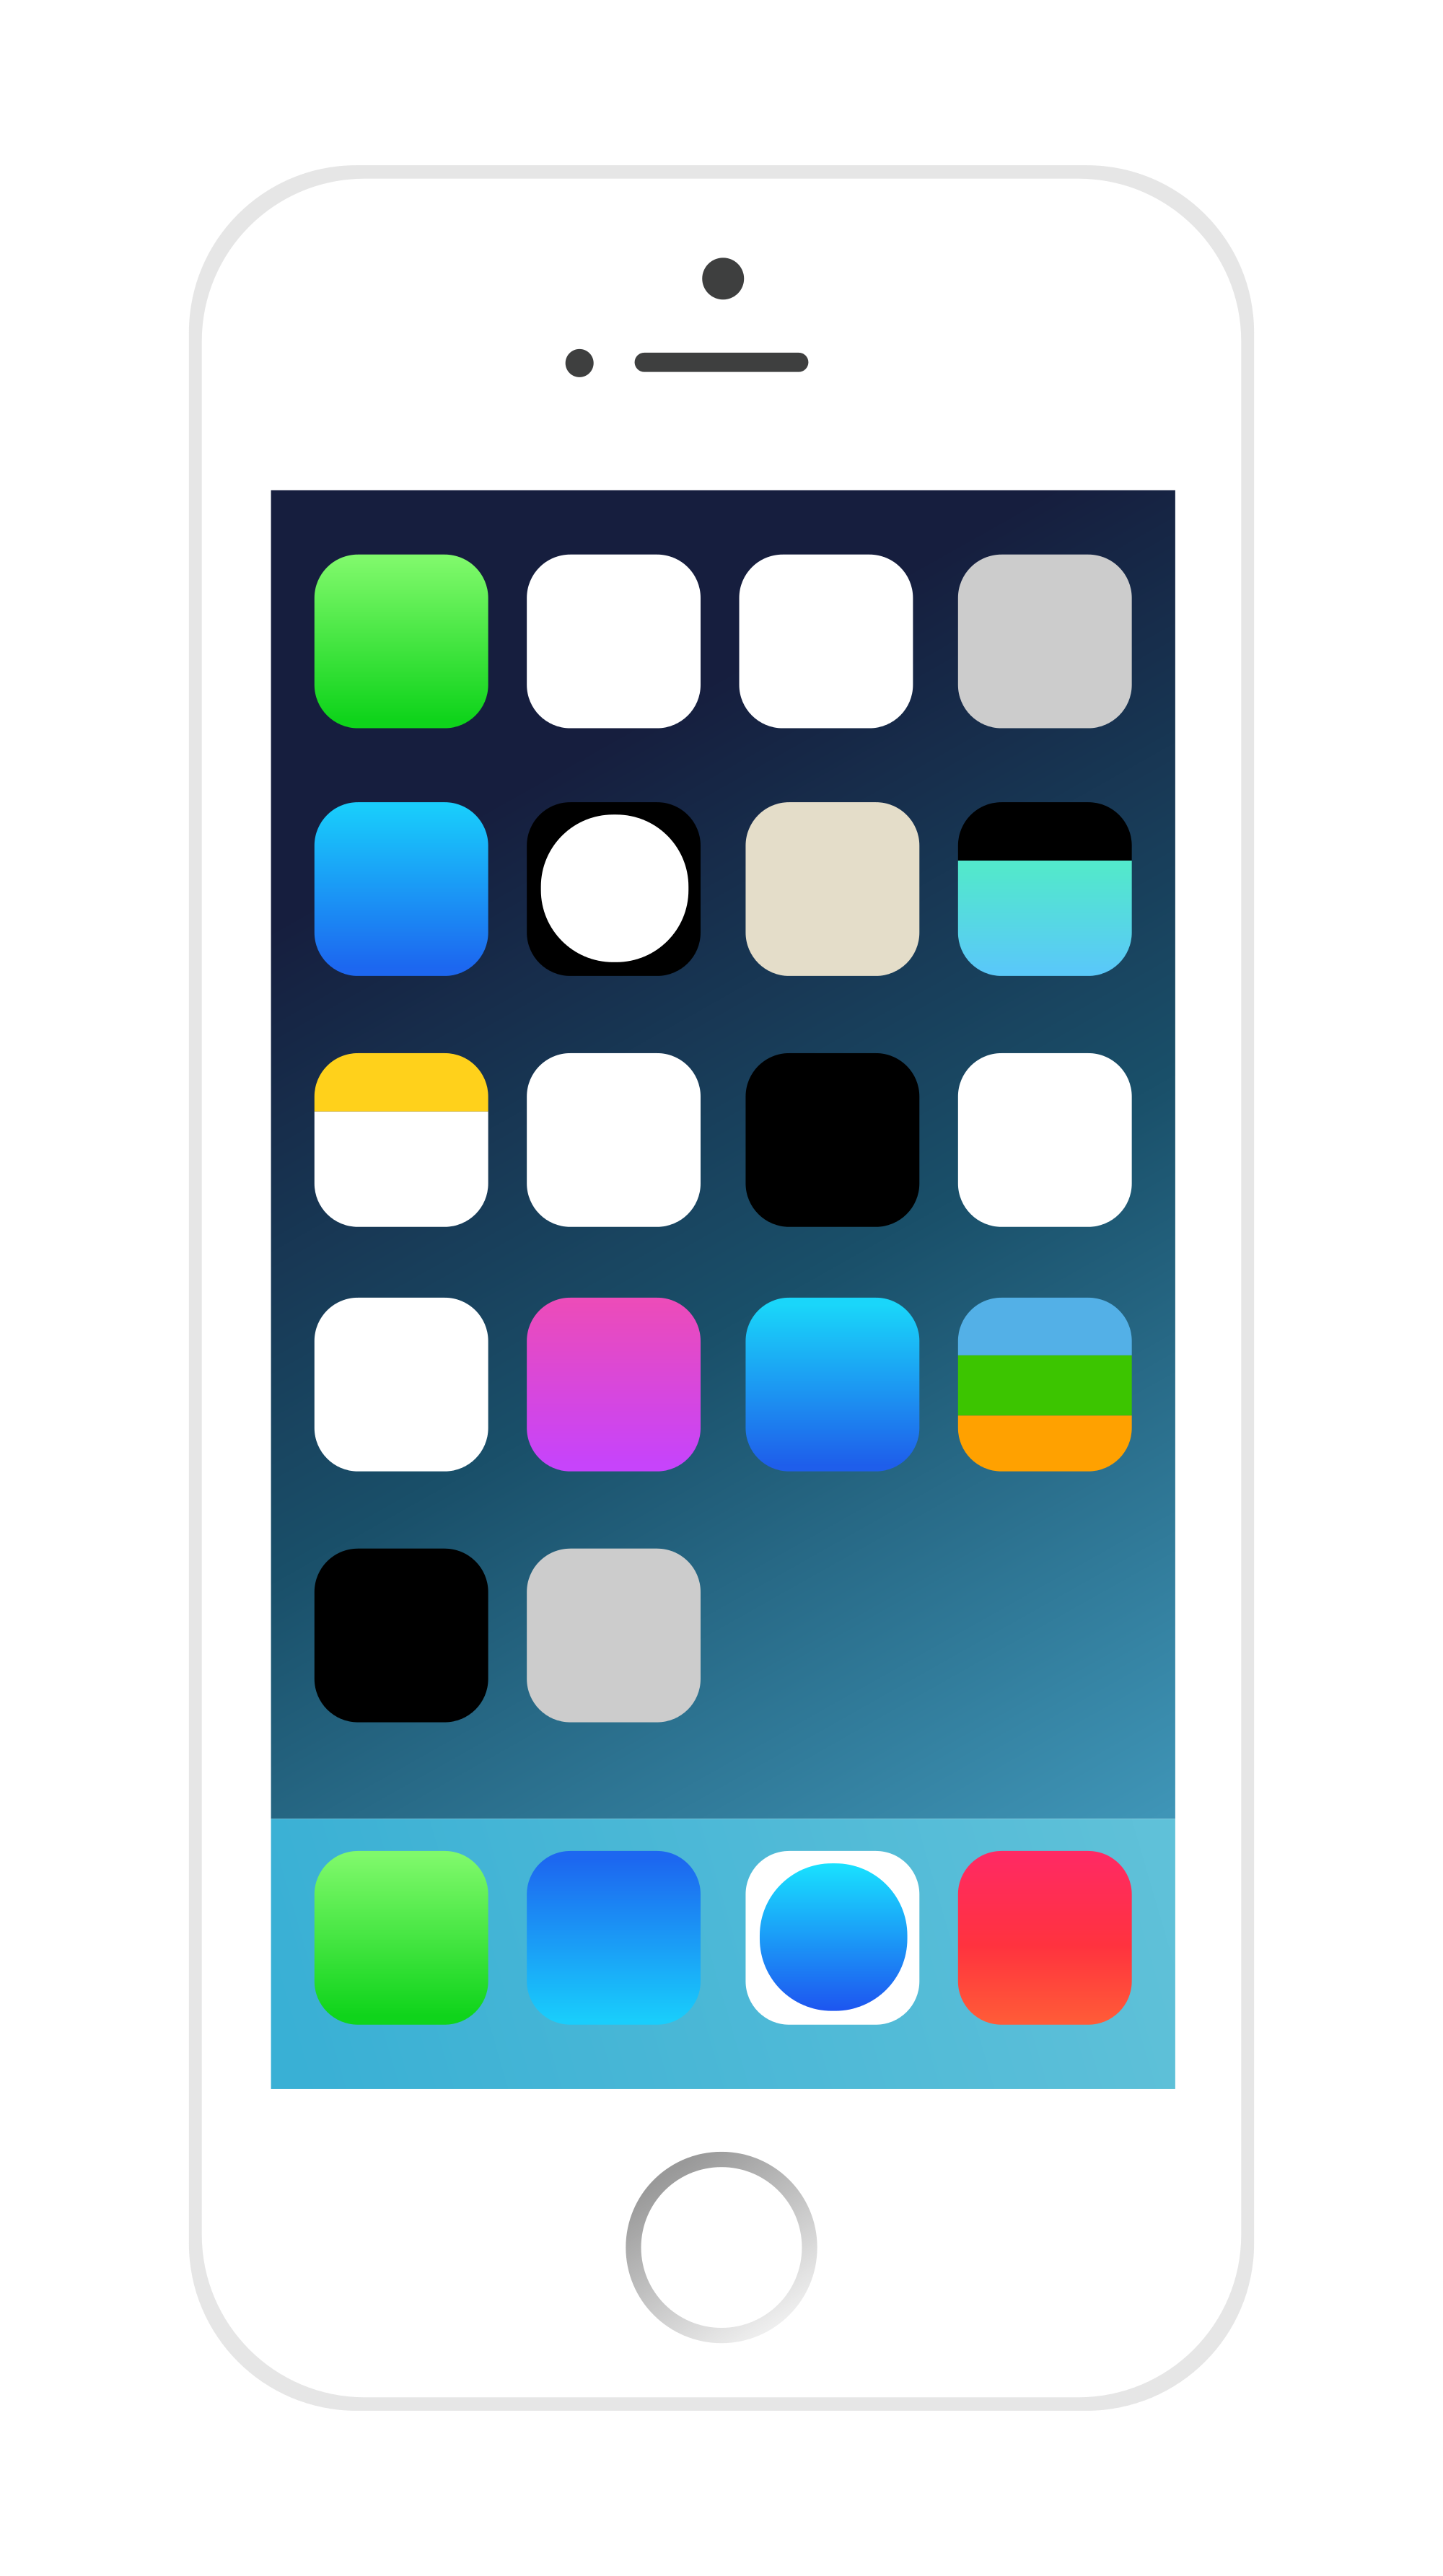 Iphone icons png. File with svg wikimedia